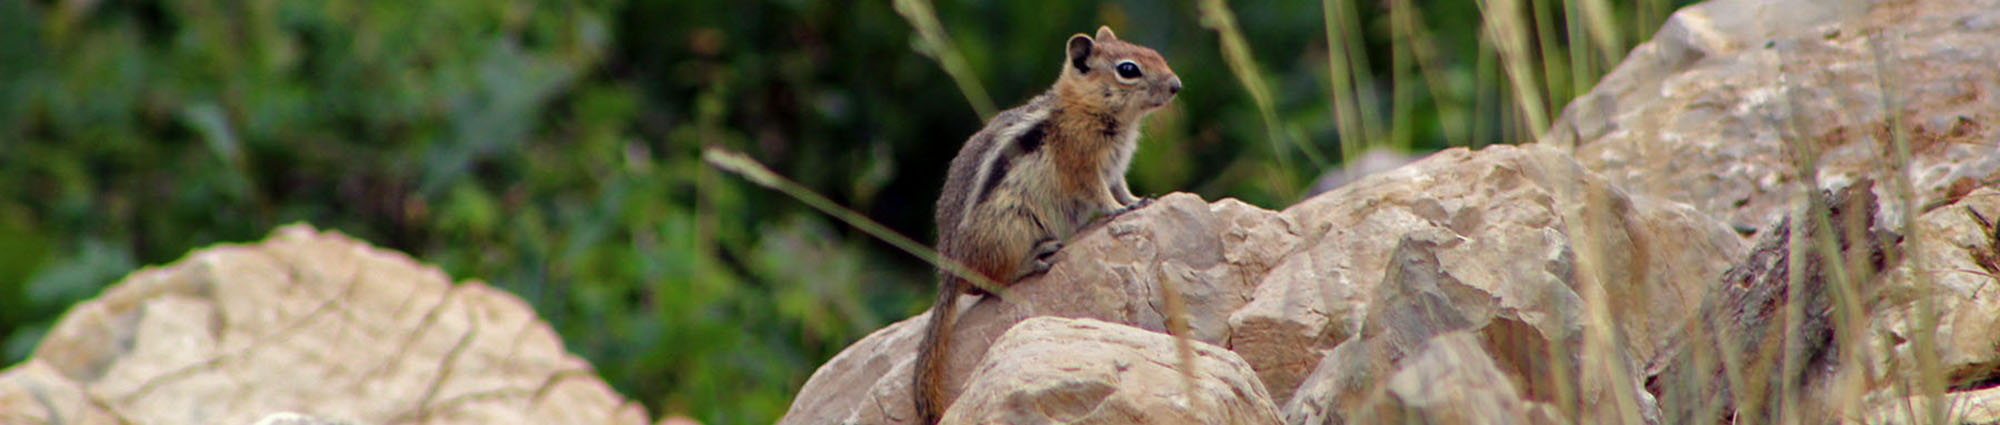 A chipmunk sits on rocks in the foreground, surrounded by a green forest.